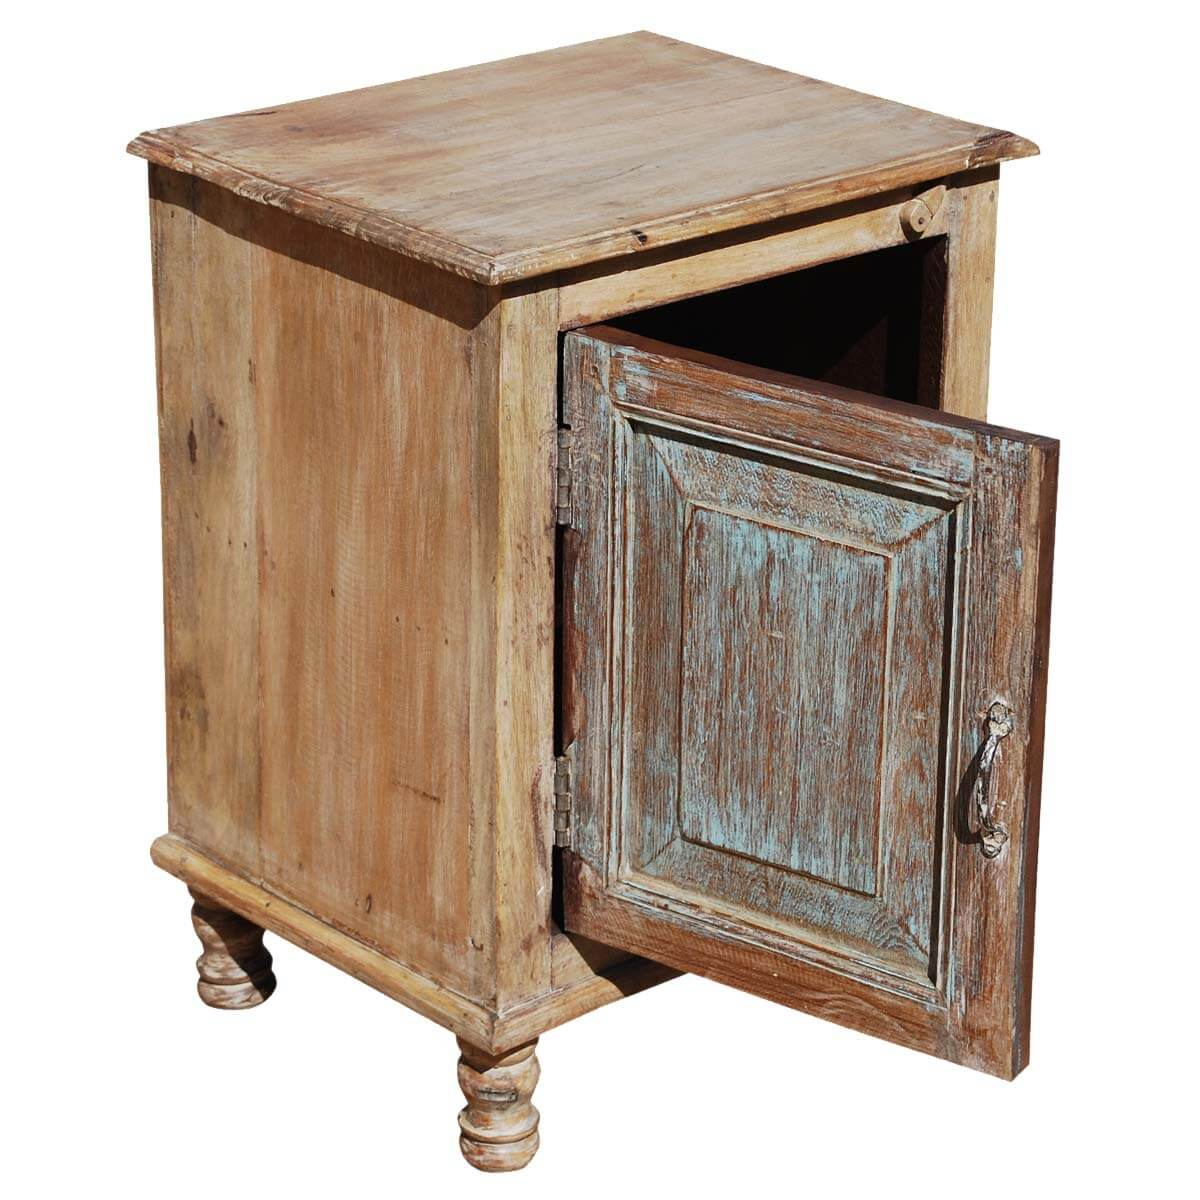 Rustic farmhouse reclaimed wood night stand end table cabinet for Reclaimed wood end table